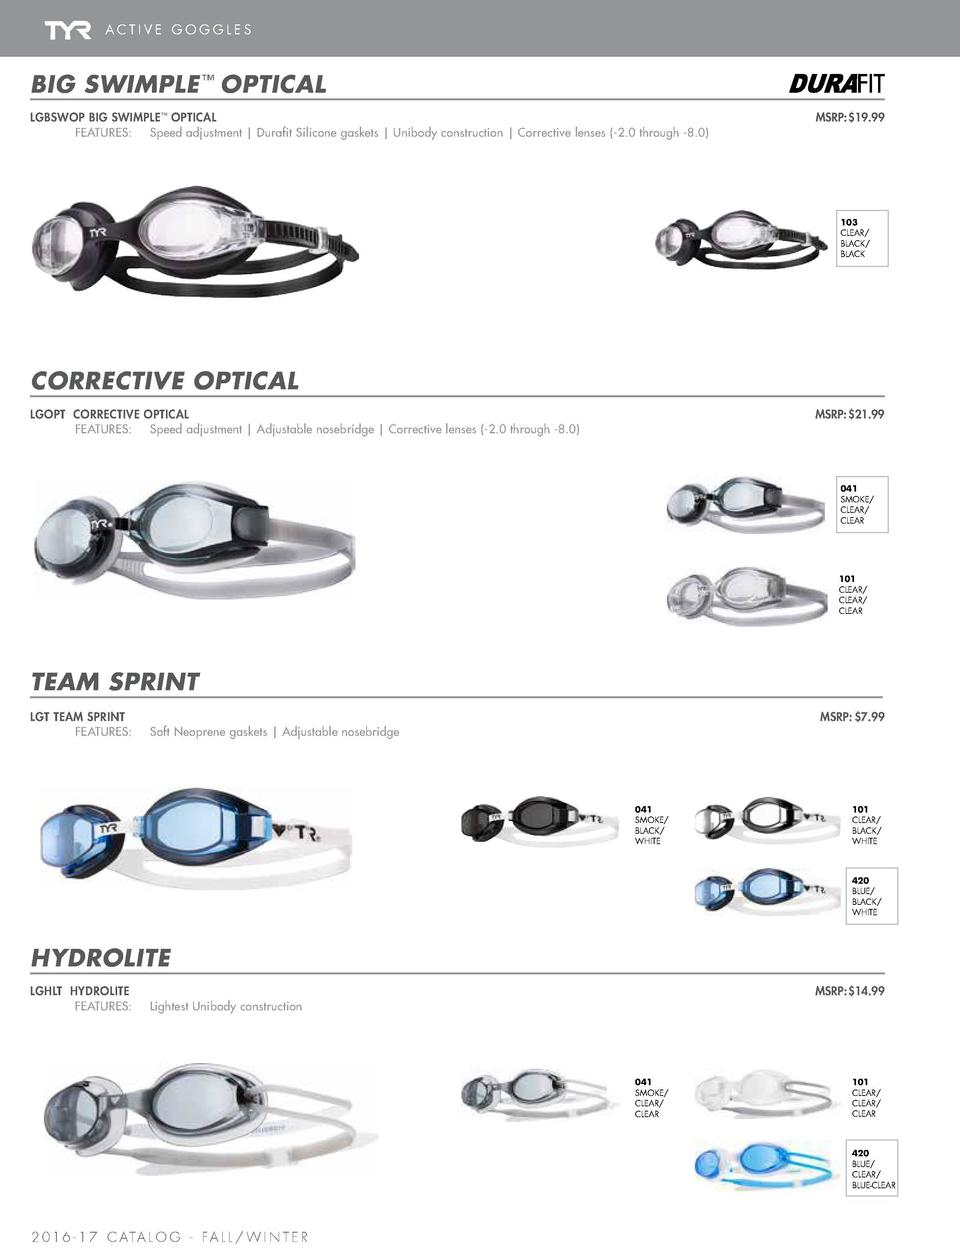 ACTIVE GOGGLES  BIG SWIMPLE      CORRECTIVE OPTICAL   TEAM SPRINT   HYDROLITE  BIG SWIMPLE     OPTICAL  NEW STYLE  LGBSWOP...